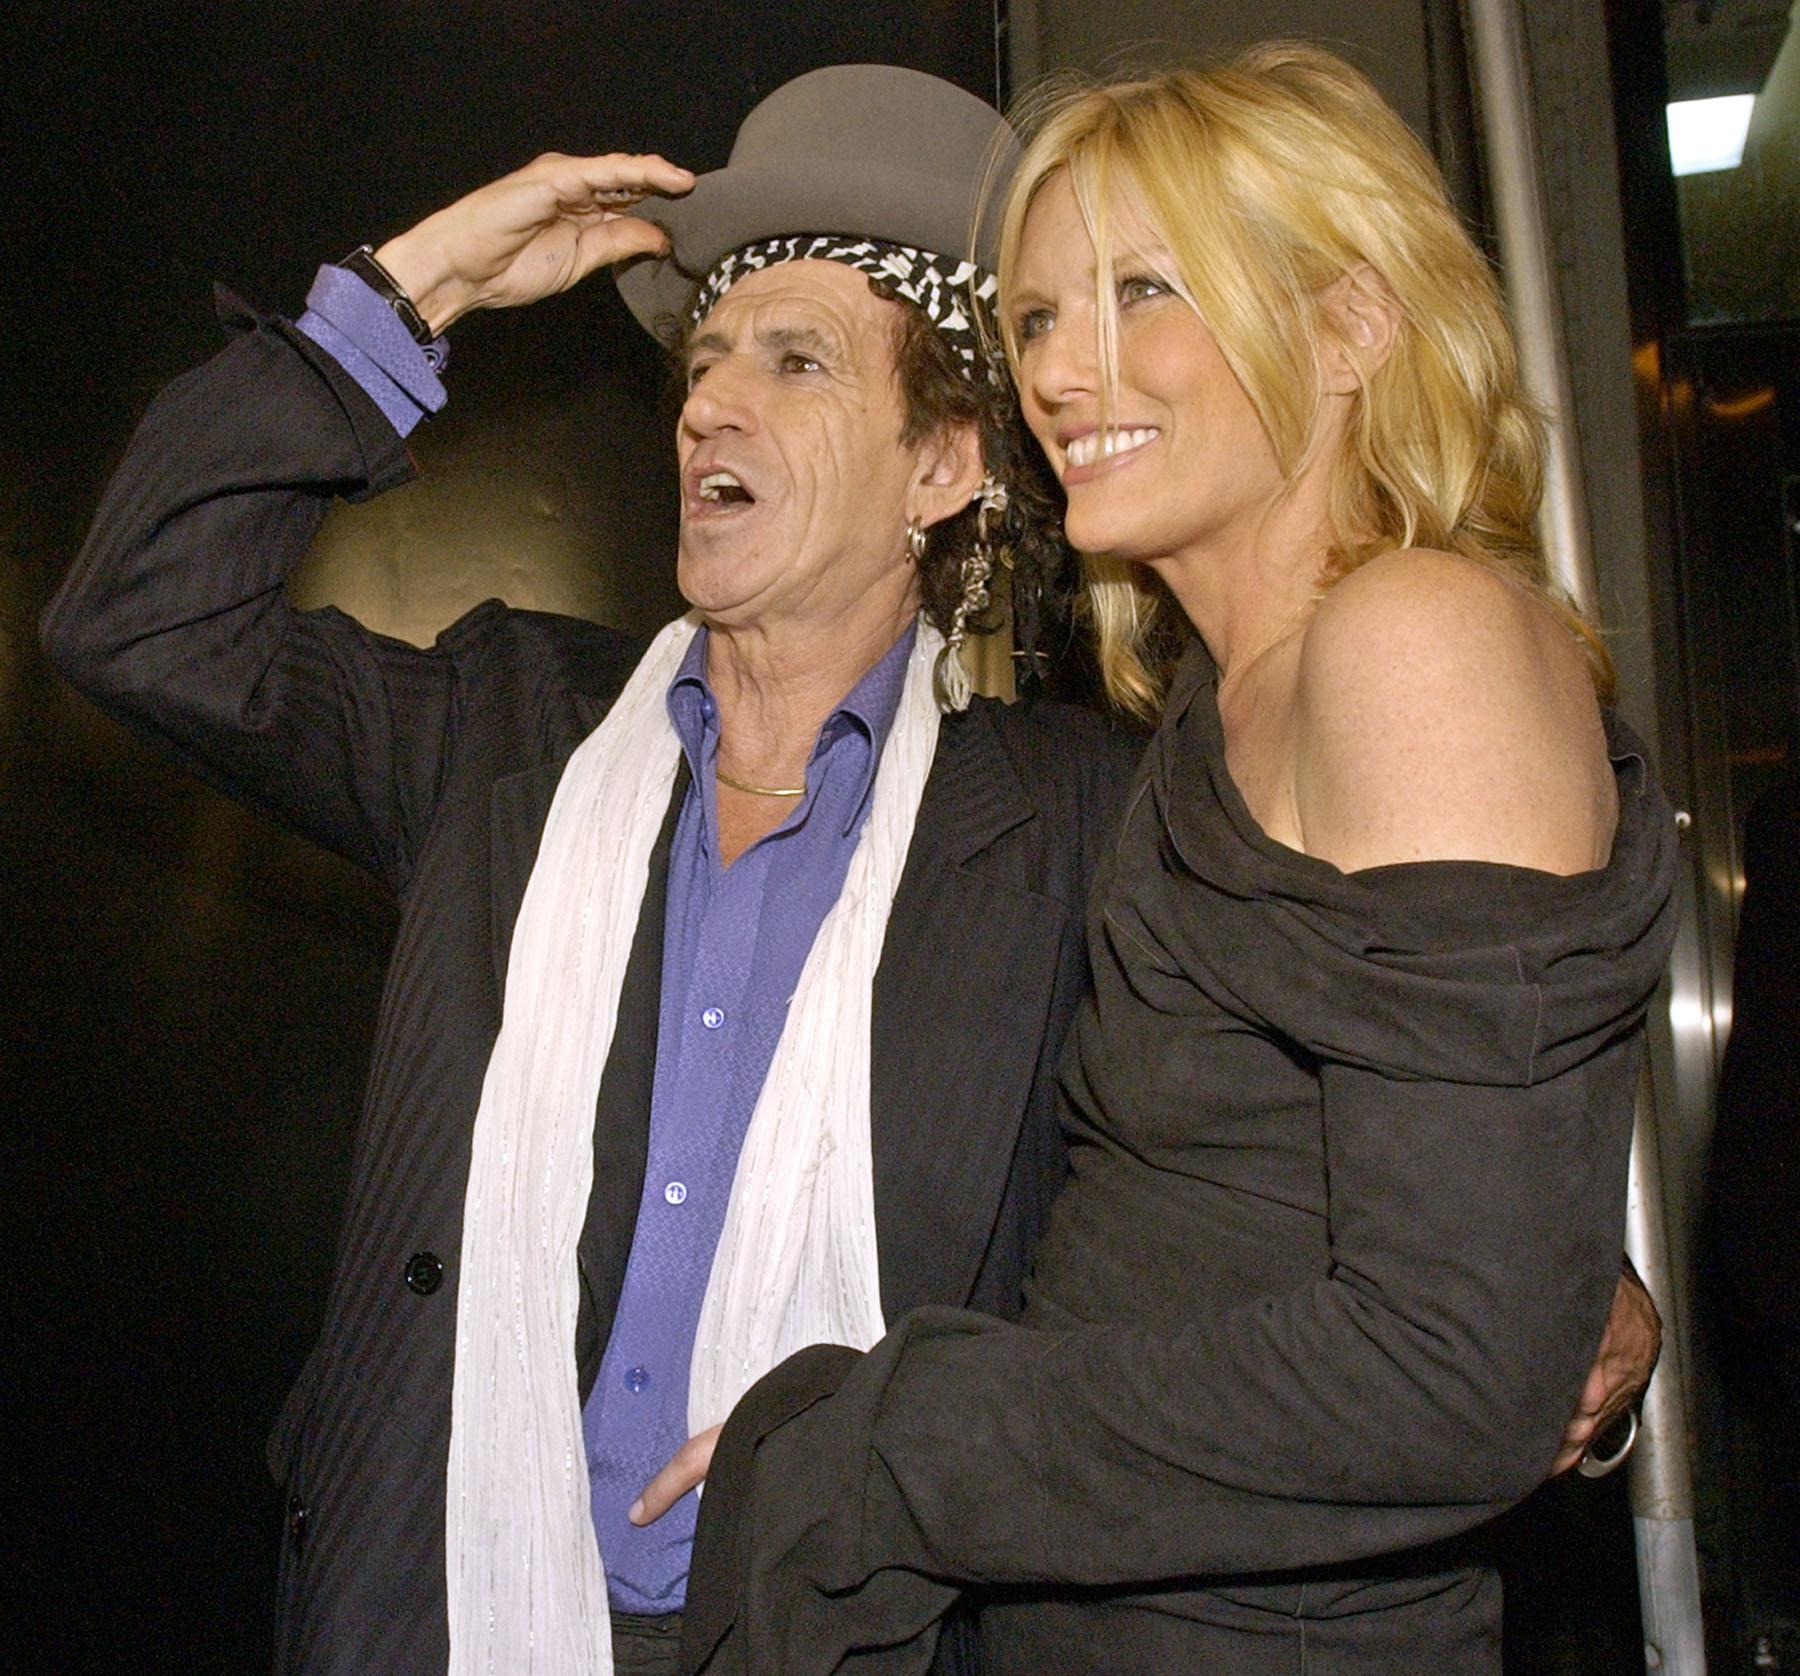 keith richards auction to benefit ridgefield charities